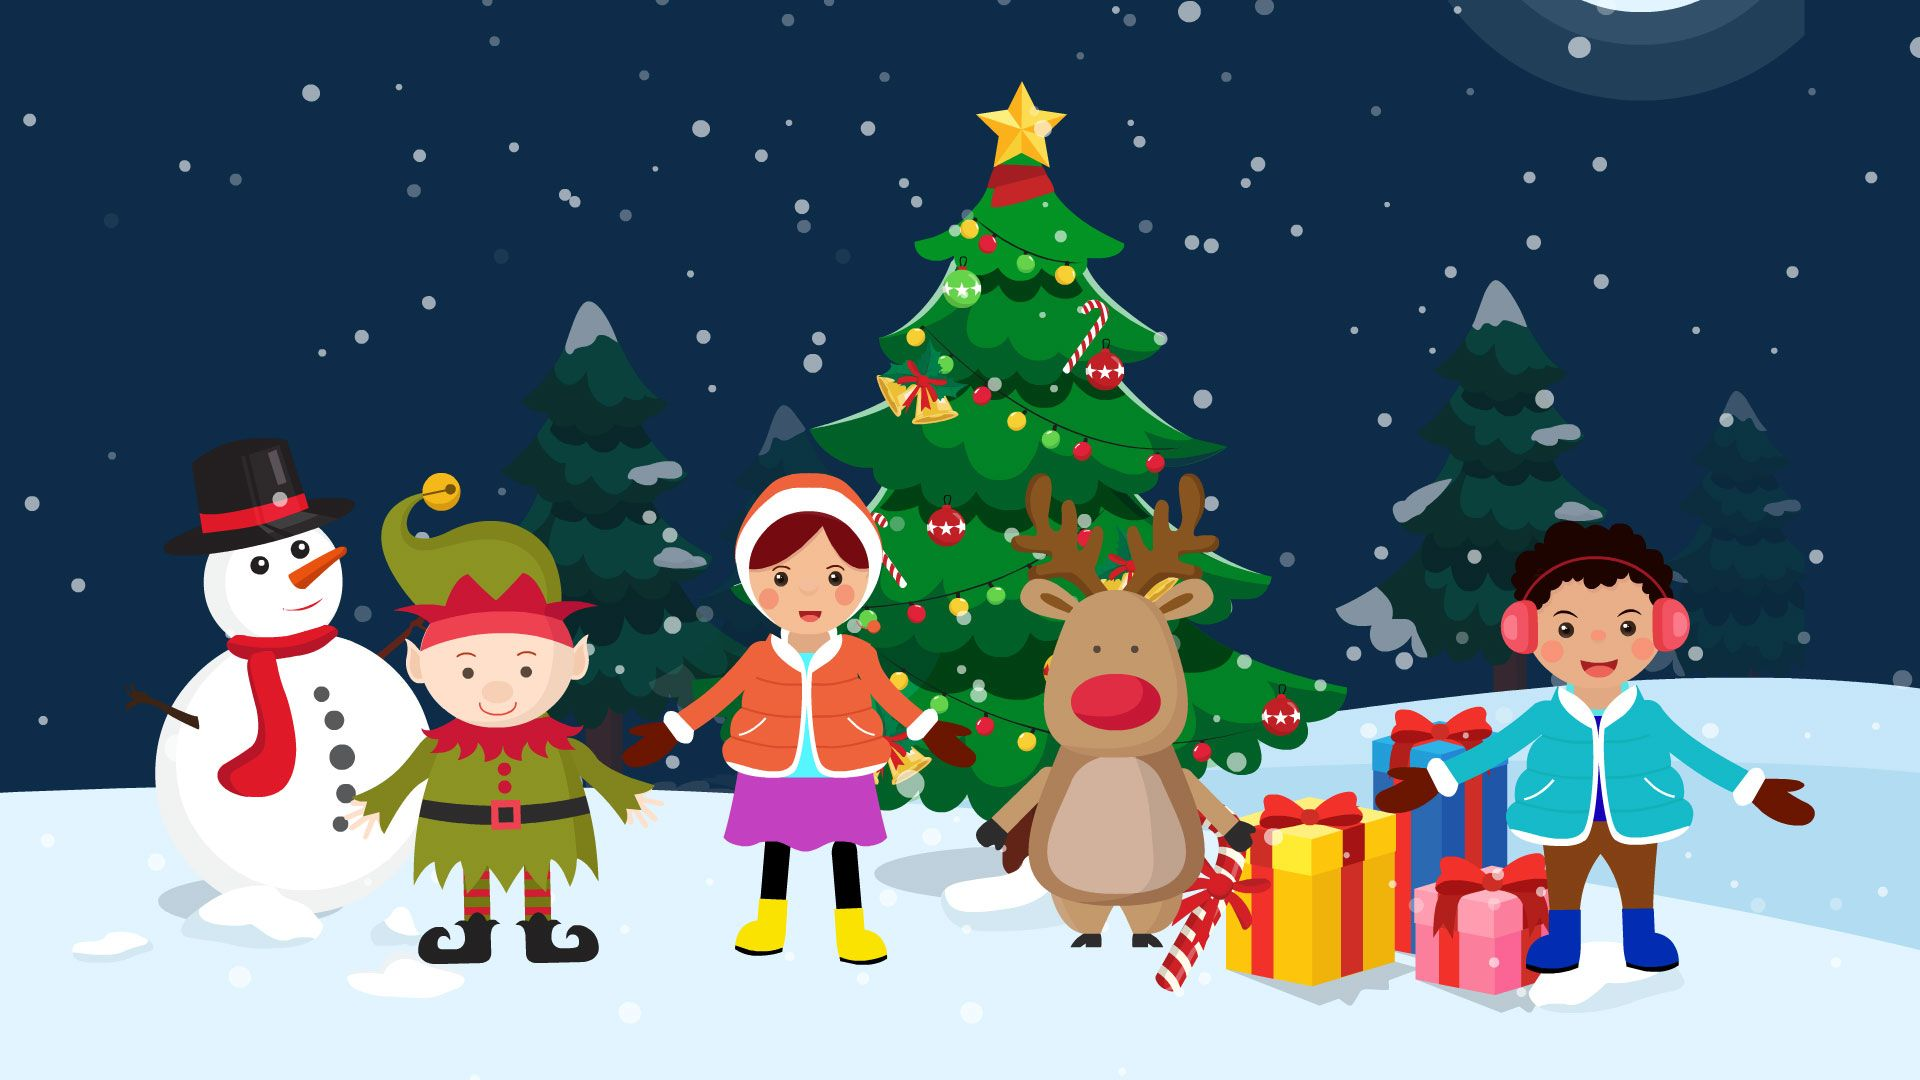 New Year And Christmas Cartoon And Song For Children Kids Songs Christmas Cartoons New Year Cartoon